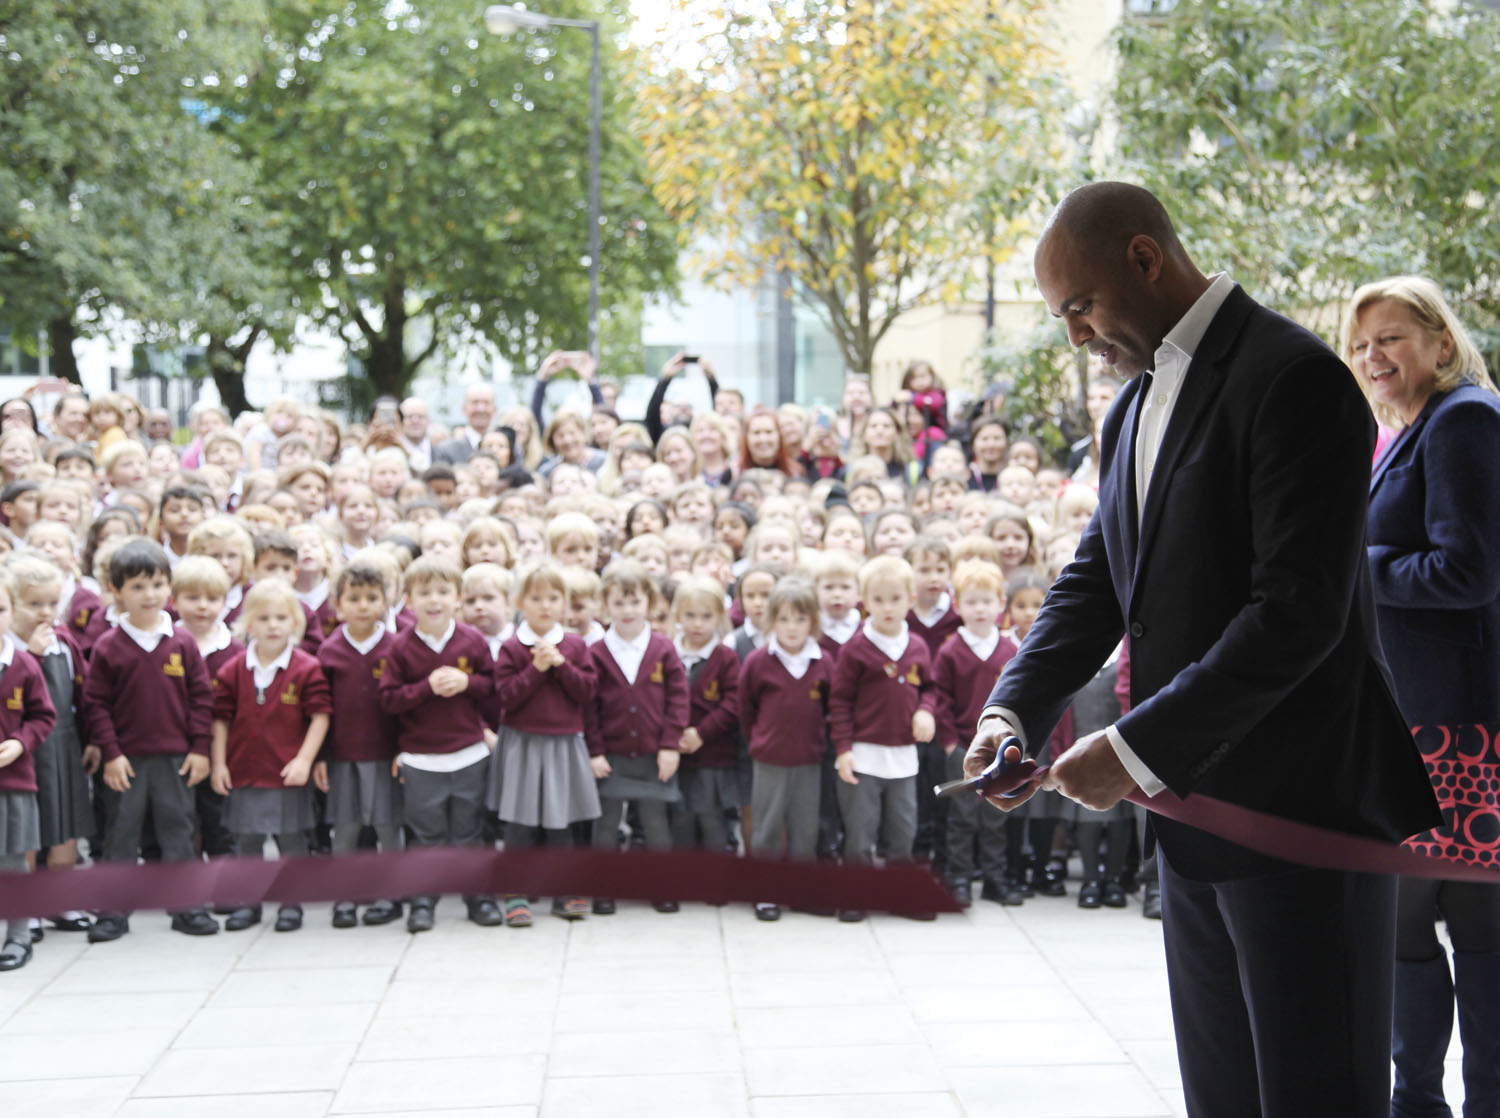 Cathedral School Opening